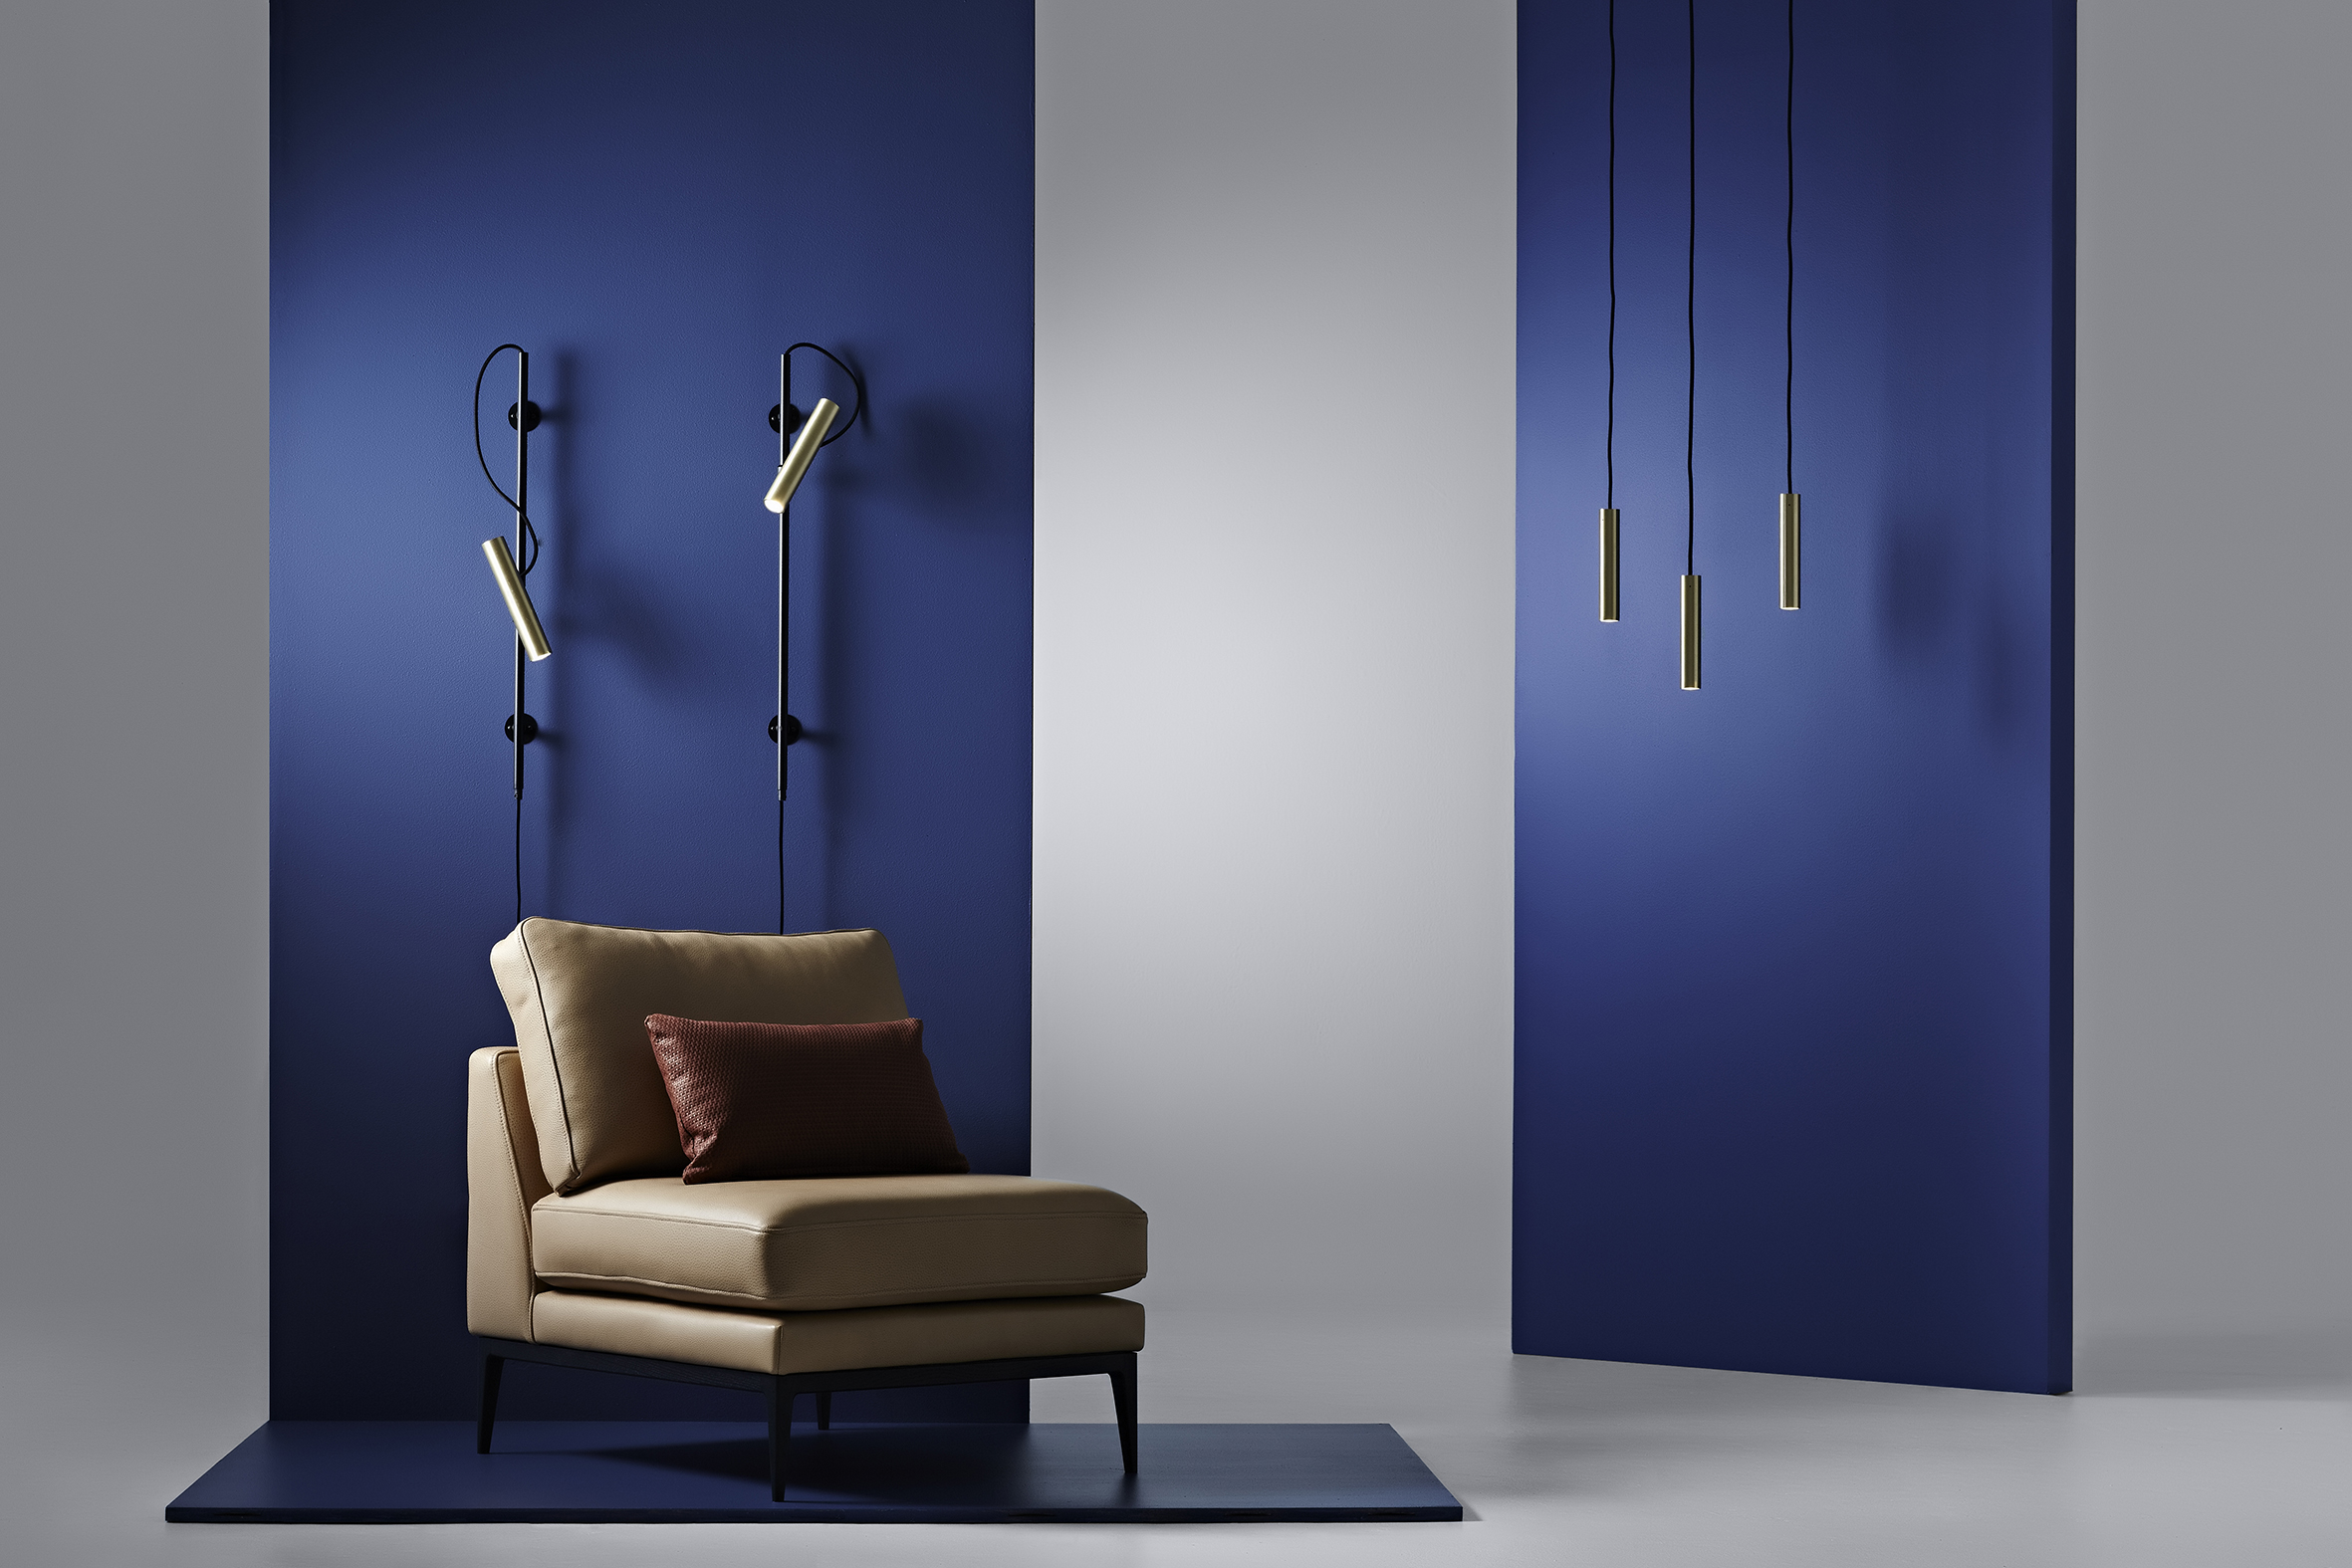 ISM Objects_Luxe Wall Light & Pendant_[insitu]_with cord copy.jpg